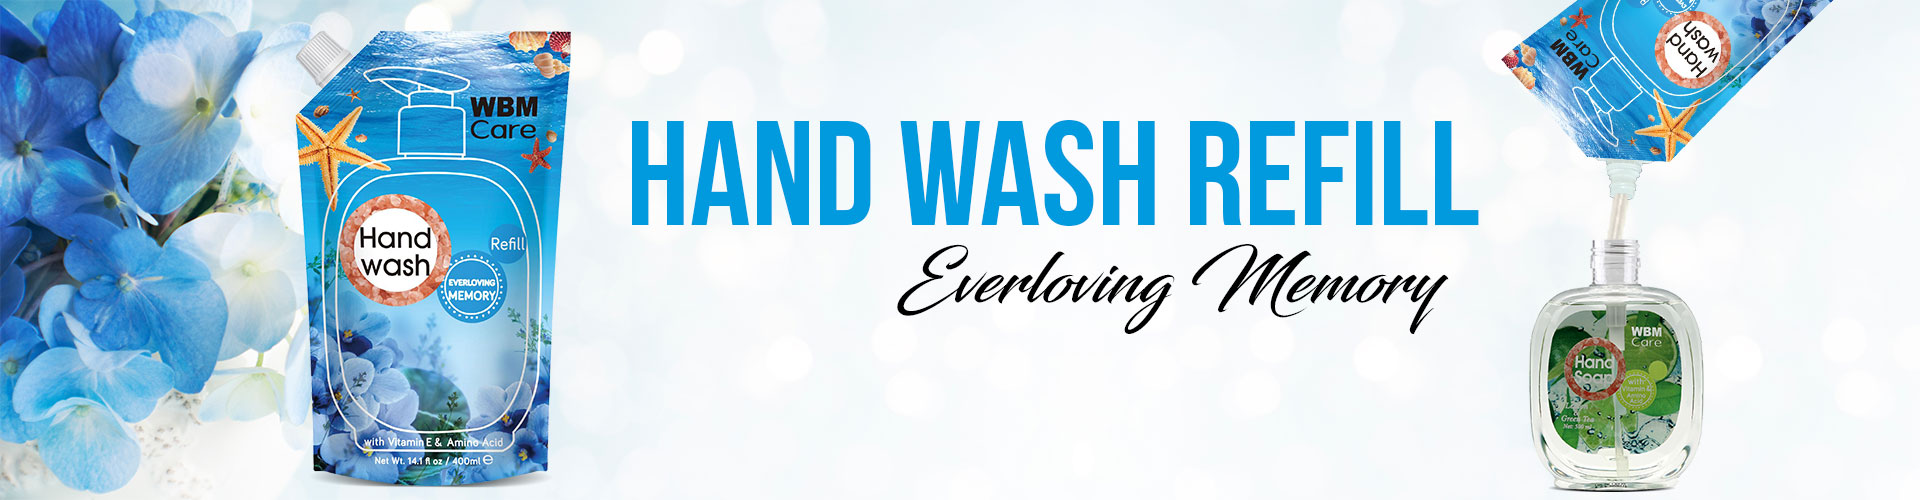 Hand Wash Rell Ever Loving Memory